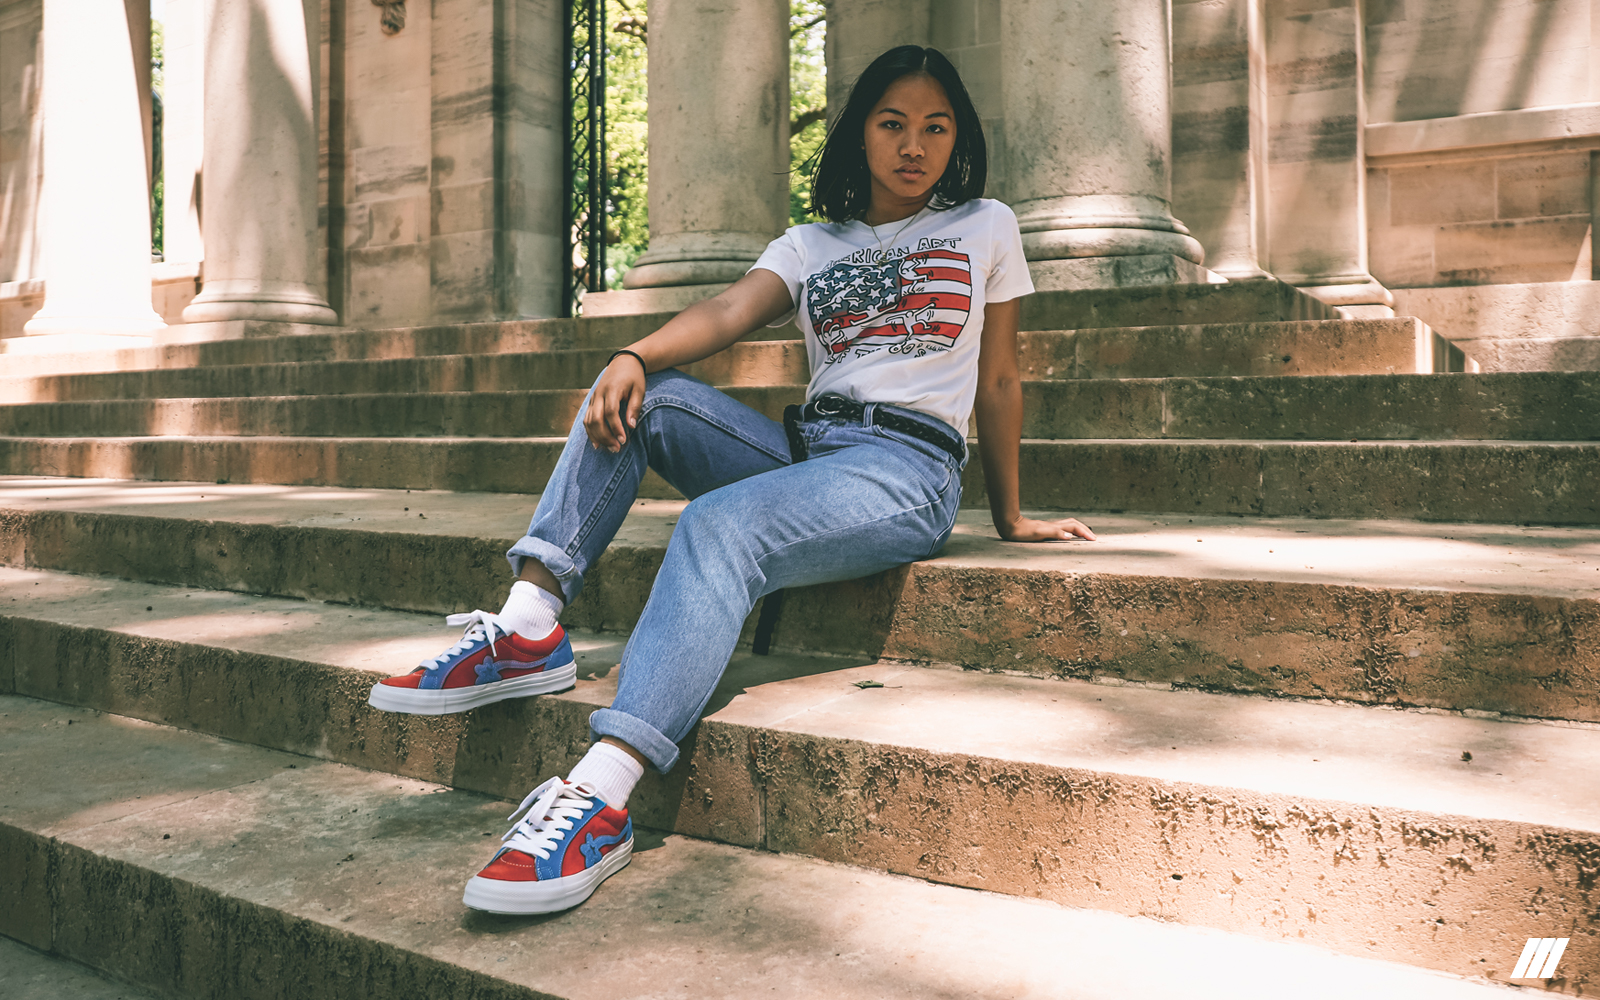 Sneaks Style Mary Saint Creates Art In The Converse X Golf Le Fleur The Lifestyle